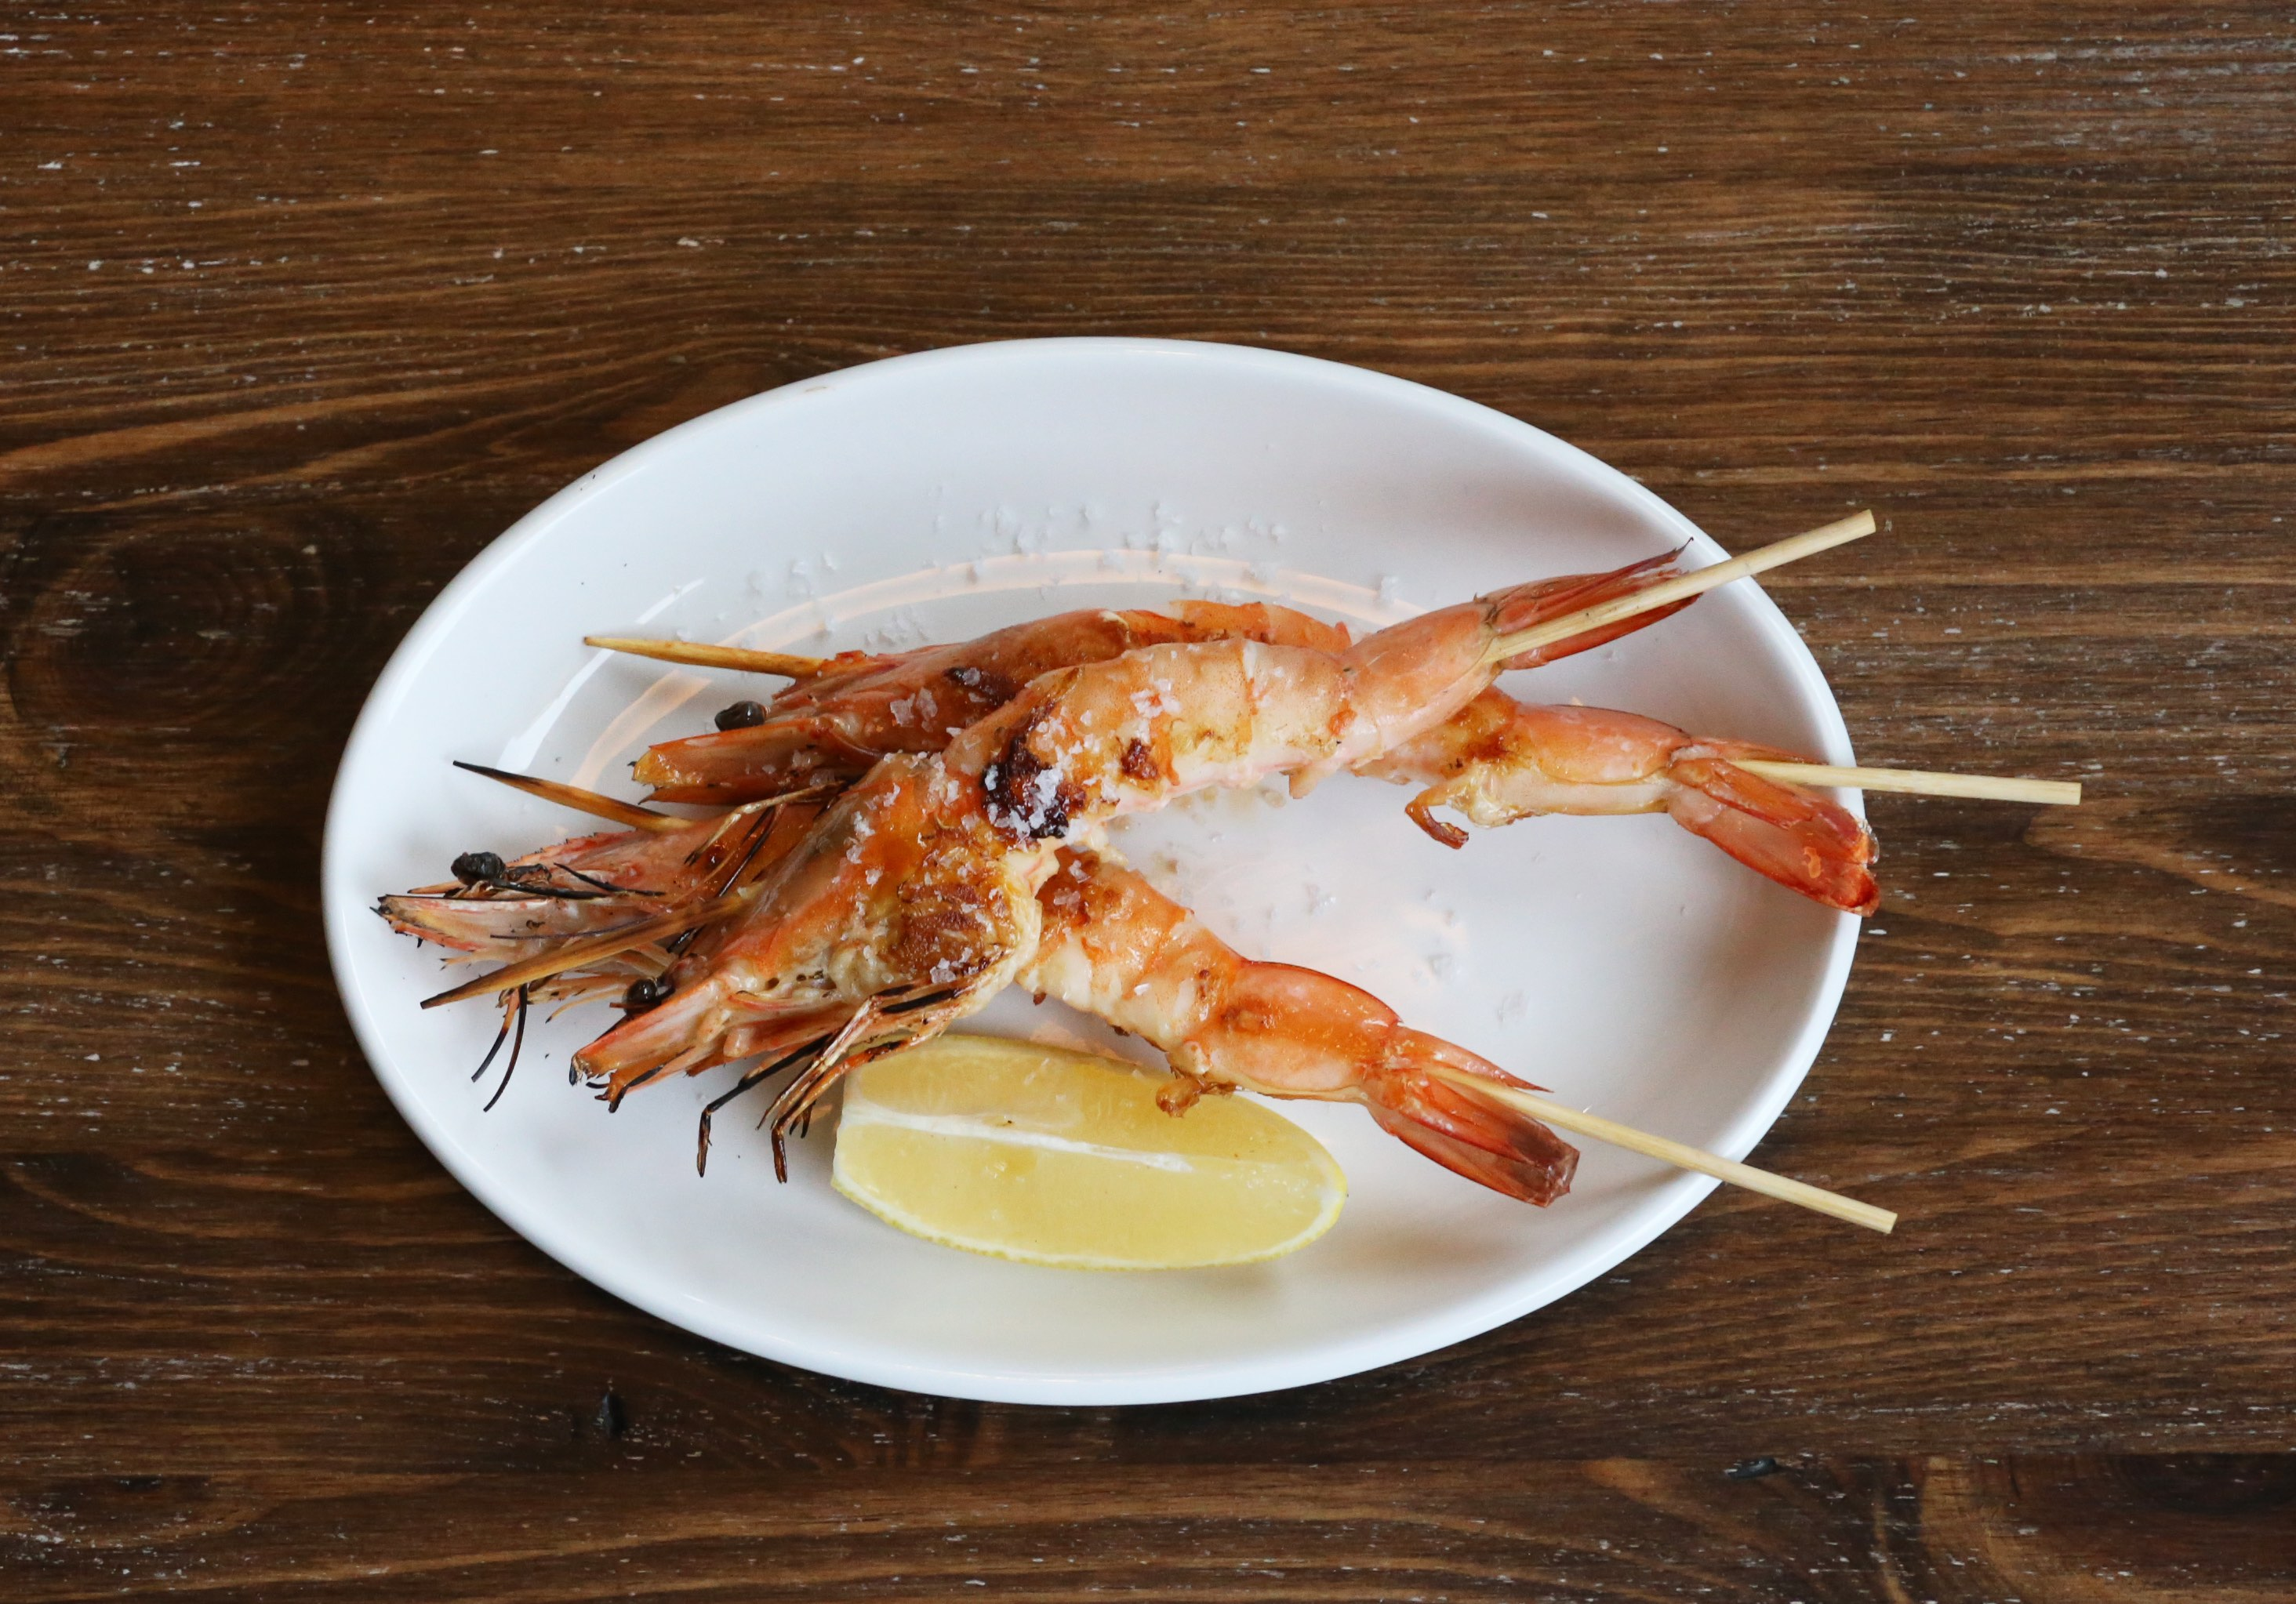 best seafood restaurant dublin, chew the fat podcast, GastroGays Chew The Fat, gastrogays podcast, Klaw Poke Dublin, Klaw restaurant Dublin, Niall Sabongi, Niall Sabongi Chew The Fat Podcast, Niall Sabongi restaurant, Niall Sabongi Restaurant dublin, oyster restaurant dublin, Seafood Cafe Dublin, seafood shellfish restaurant dublin, urban monger Dublin